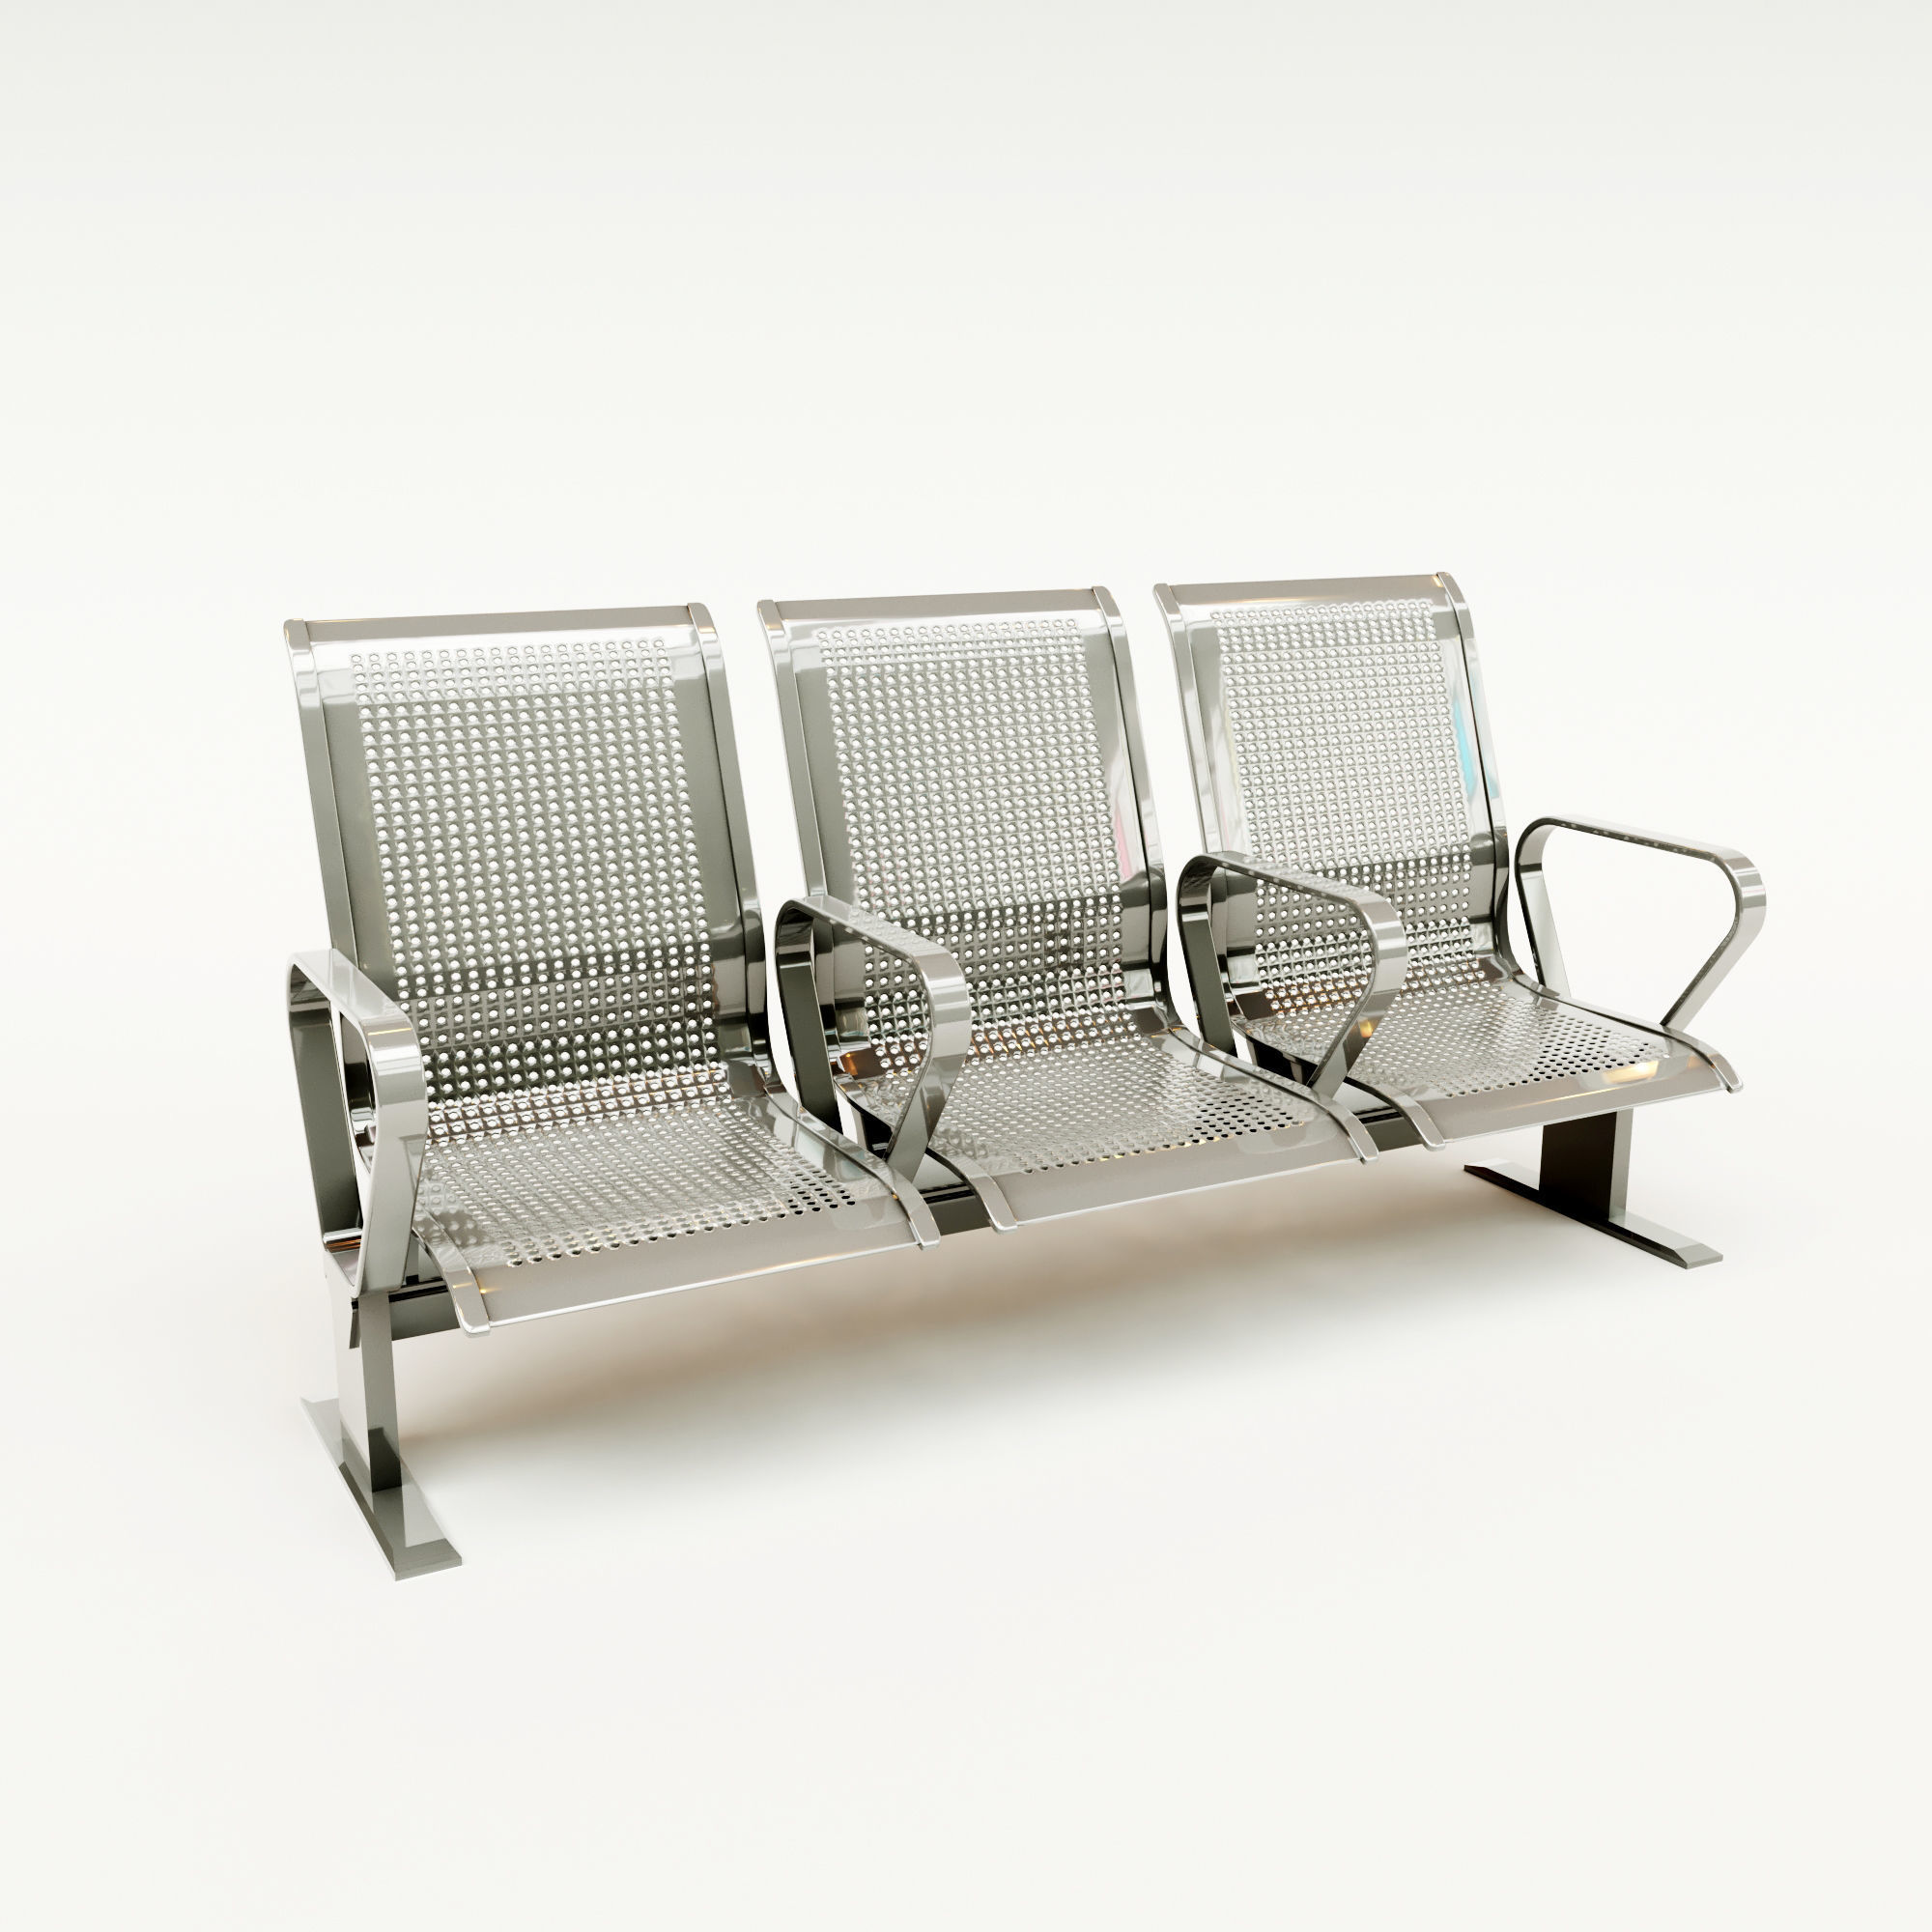 Bench for public seating